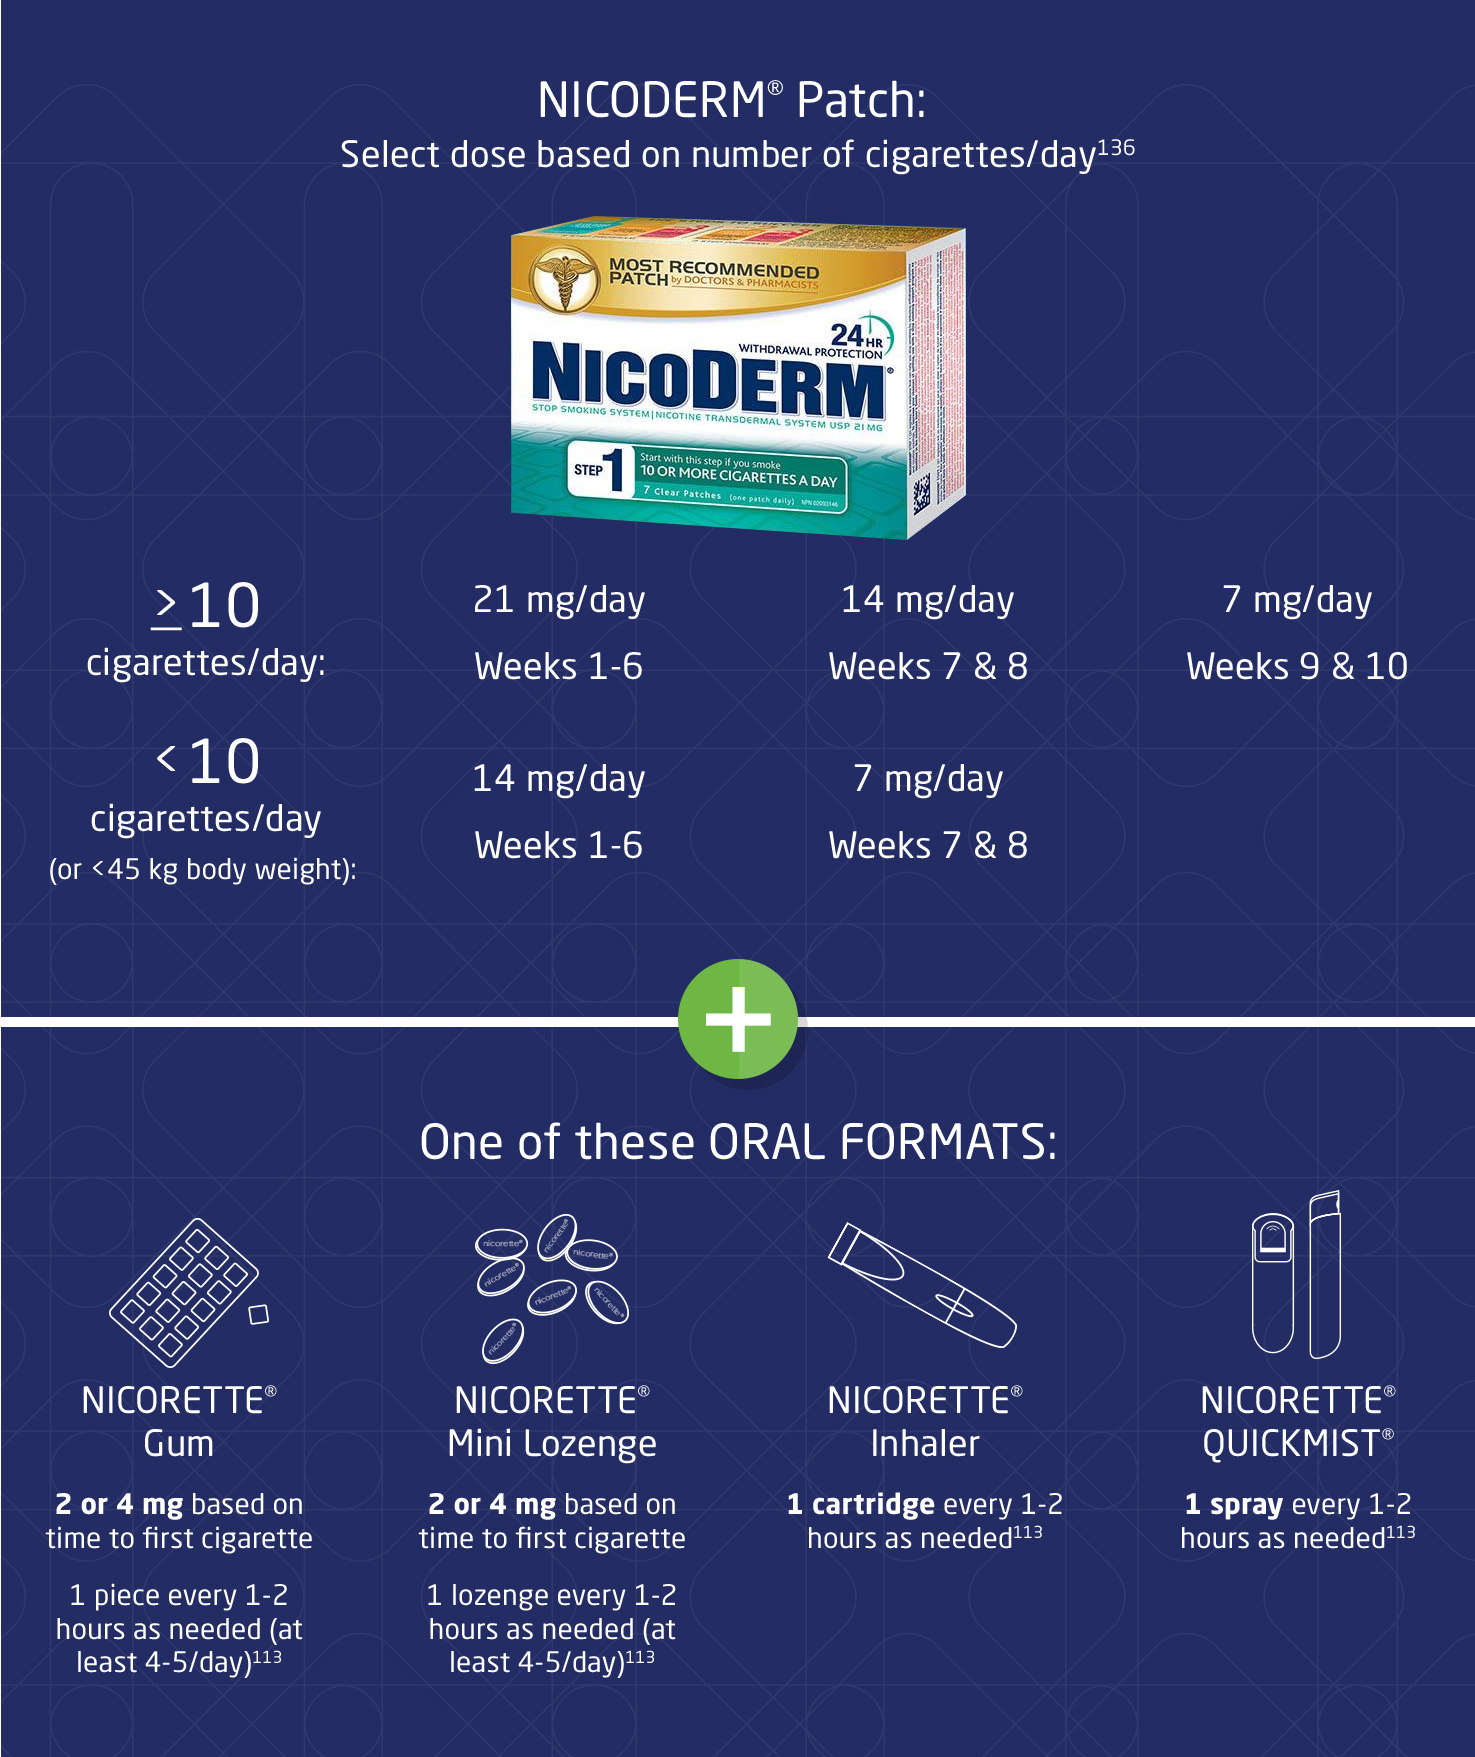 Nicoderm in addition to a rapid acting NRT helps alleviate nicotine cravings